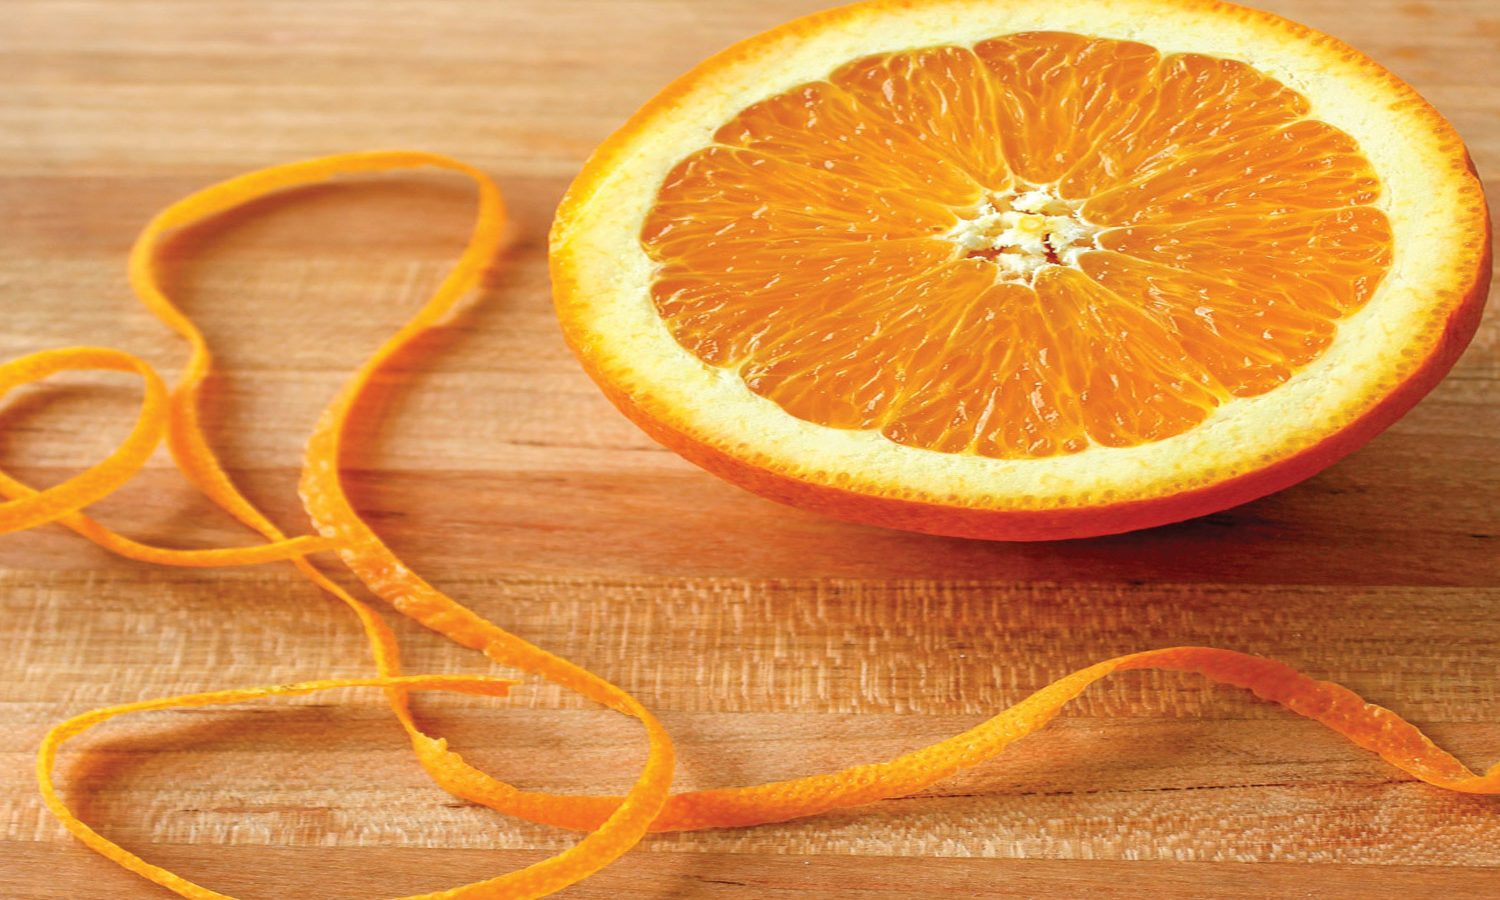 Orange half with peel for marmalade